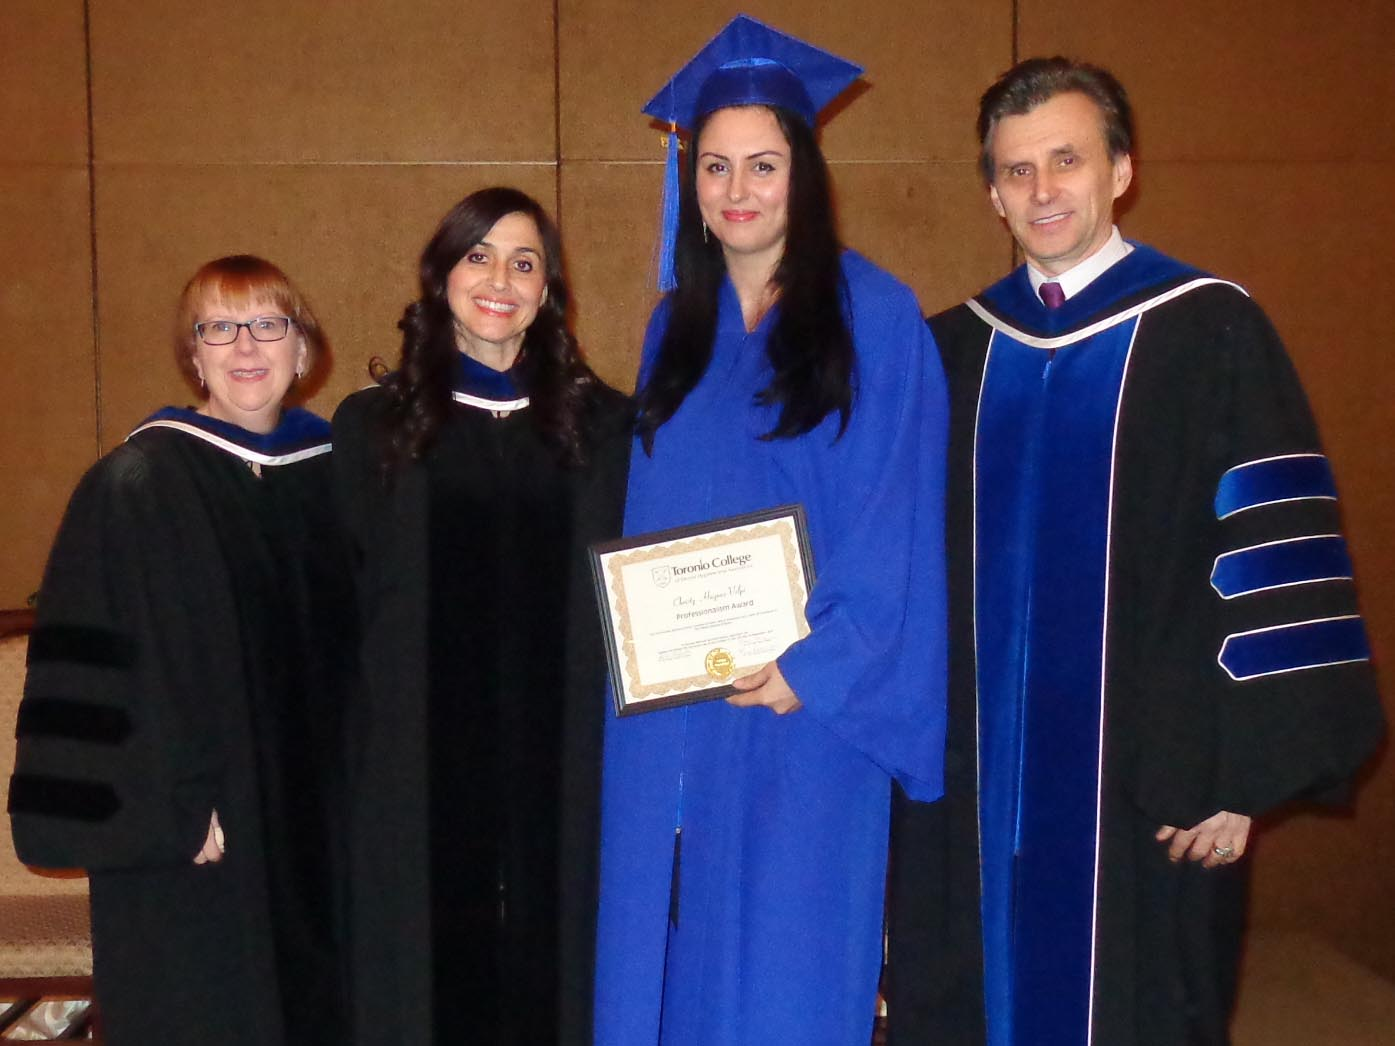 Toronto College of Dental Hygiene Graduation Ceremony 3